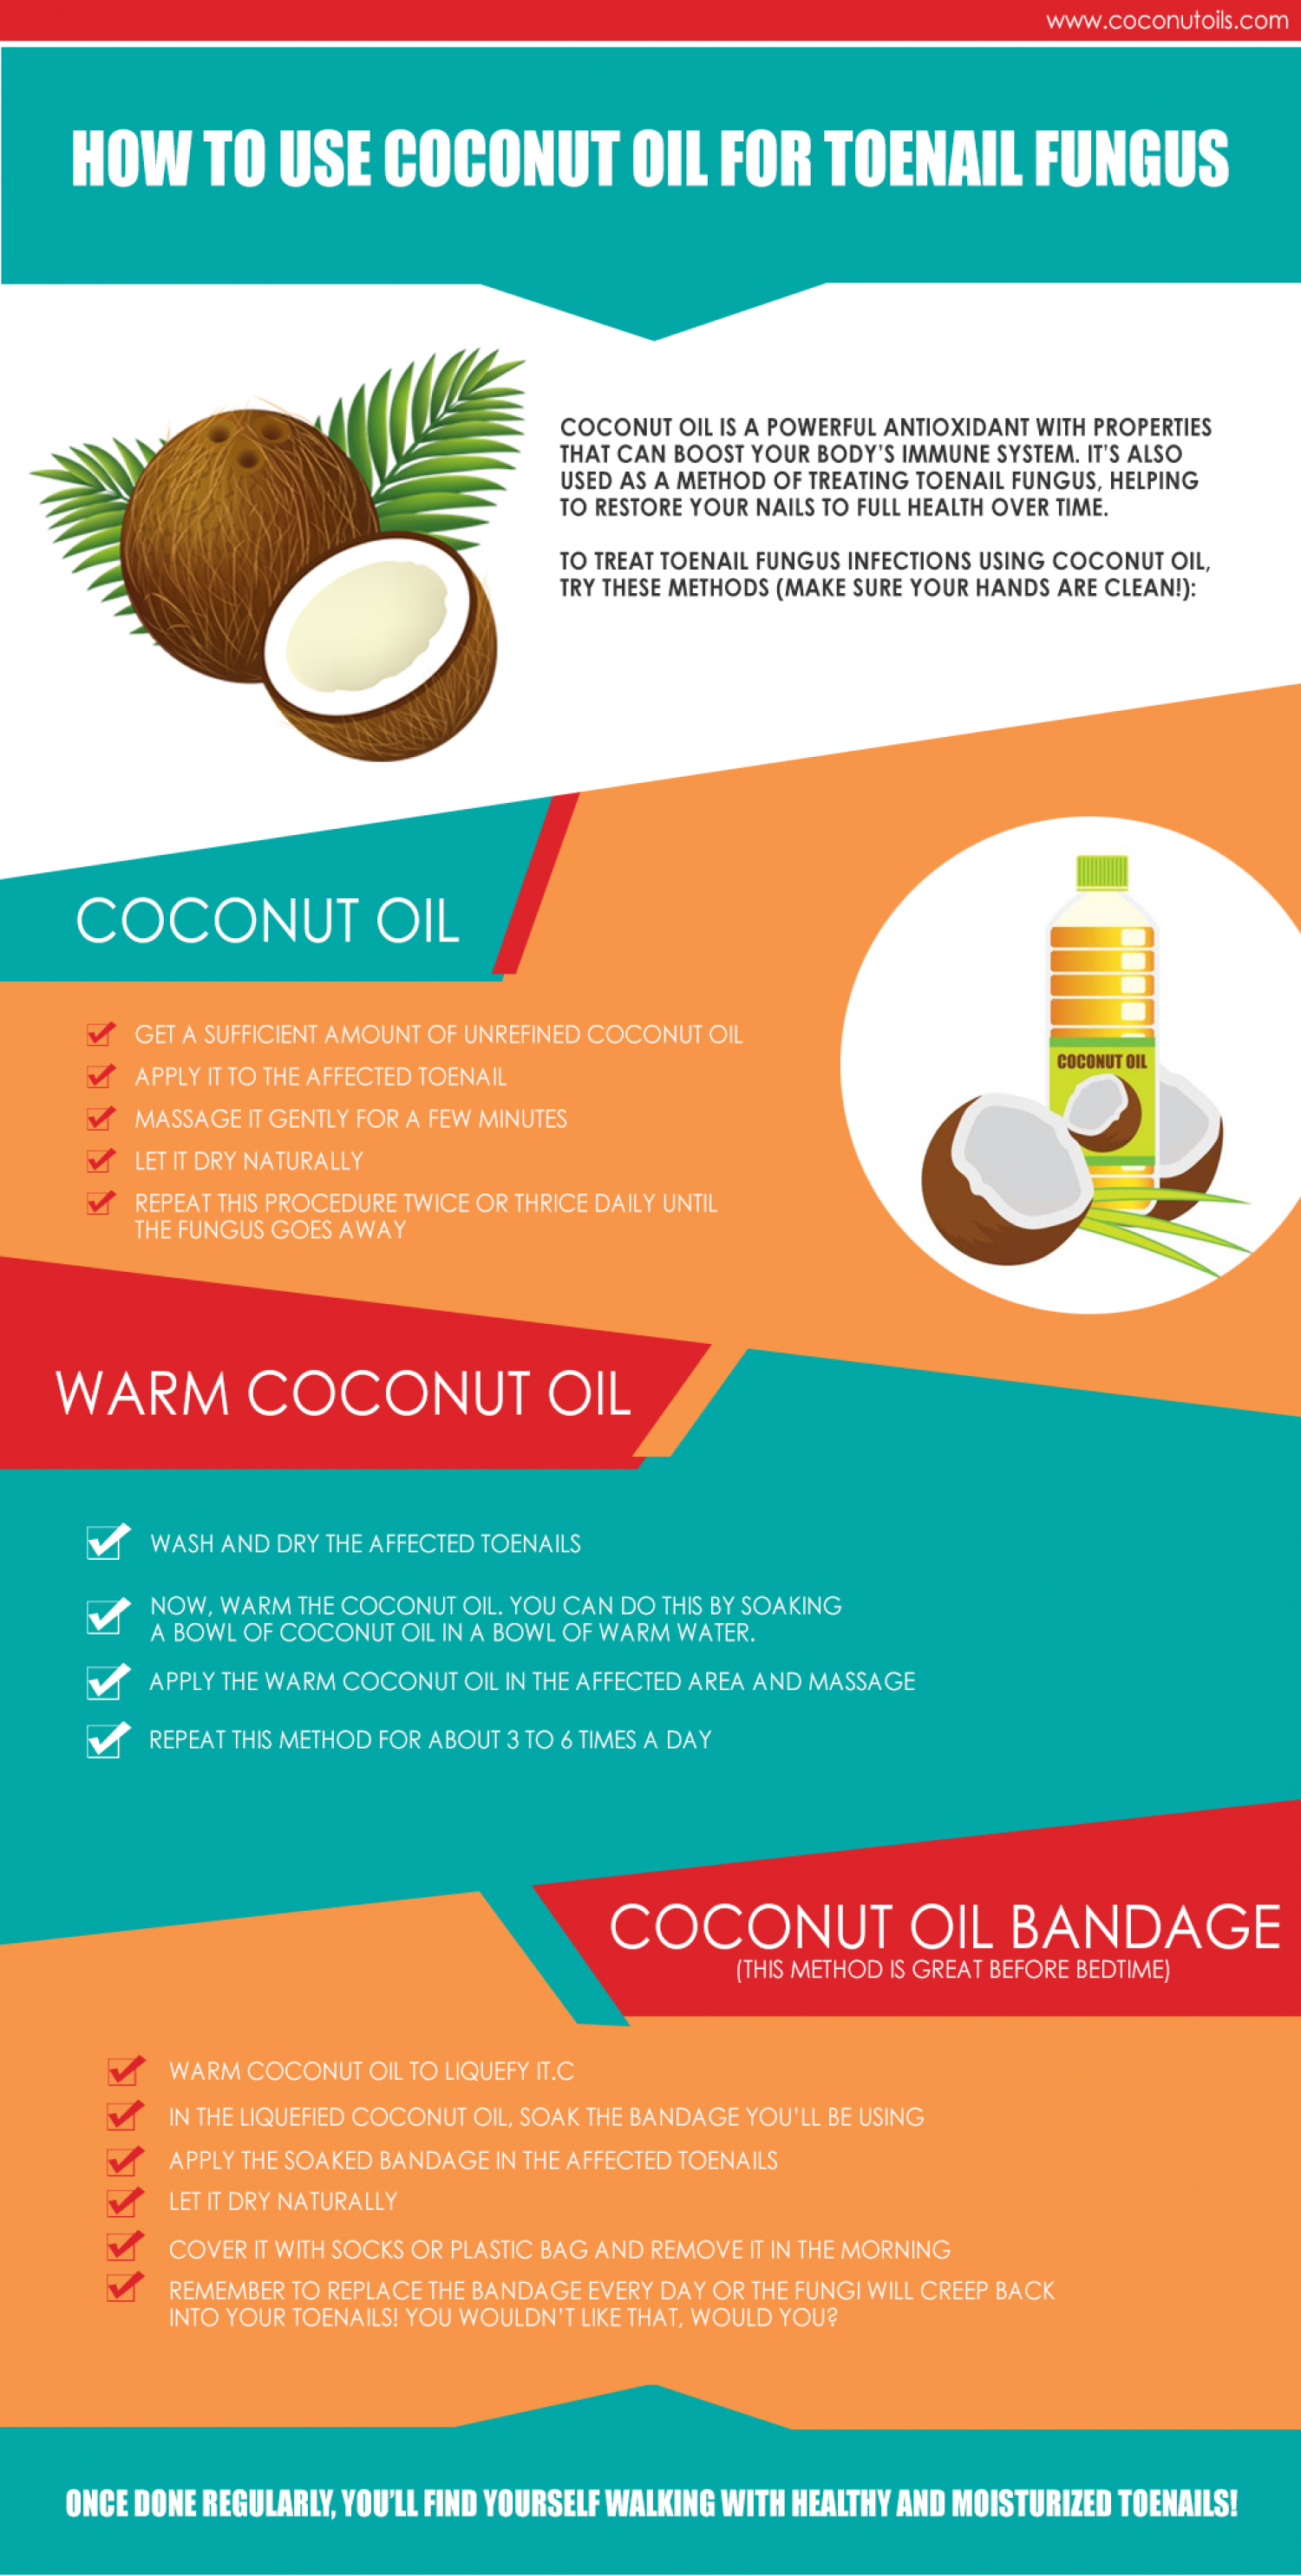 How to Use Coconut Oil for Toenail Fungus Infographic